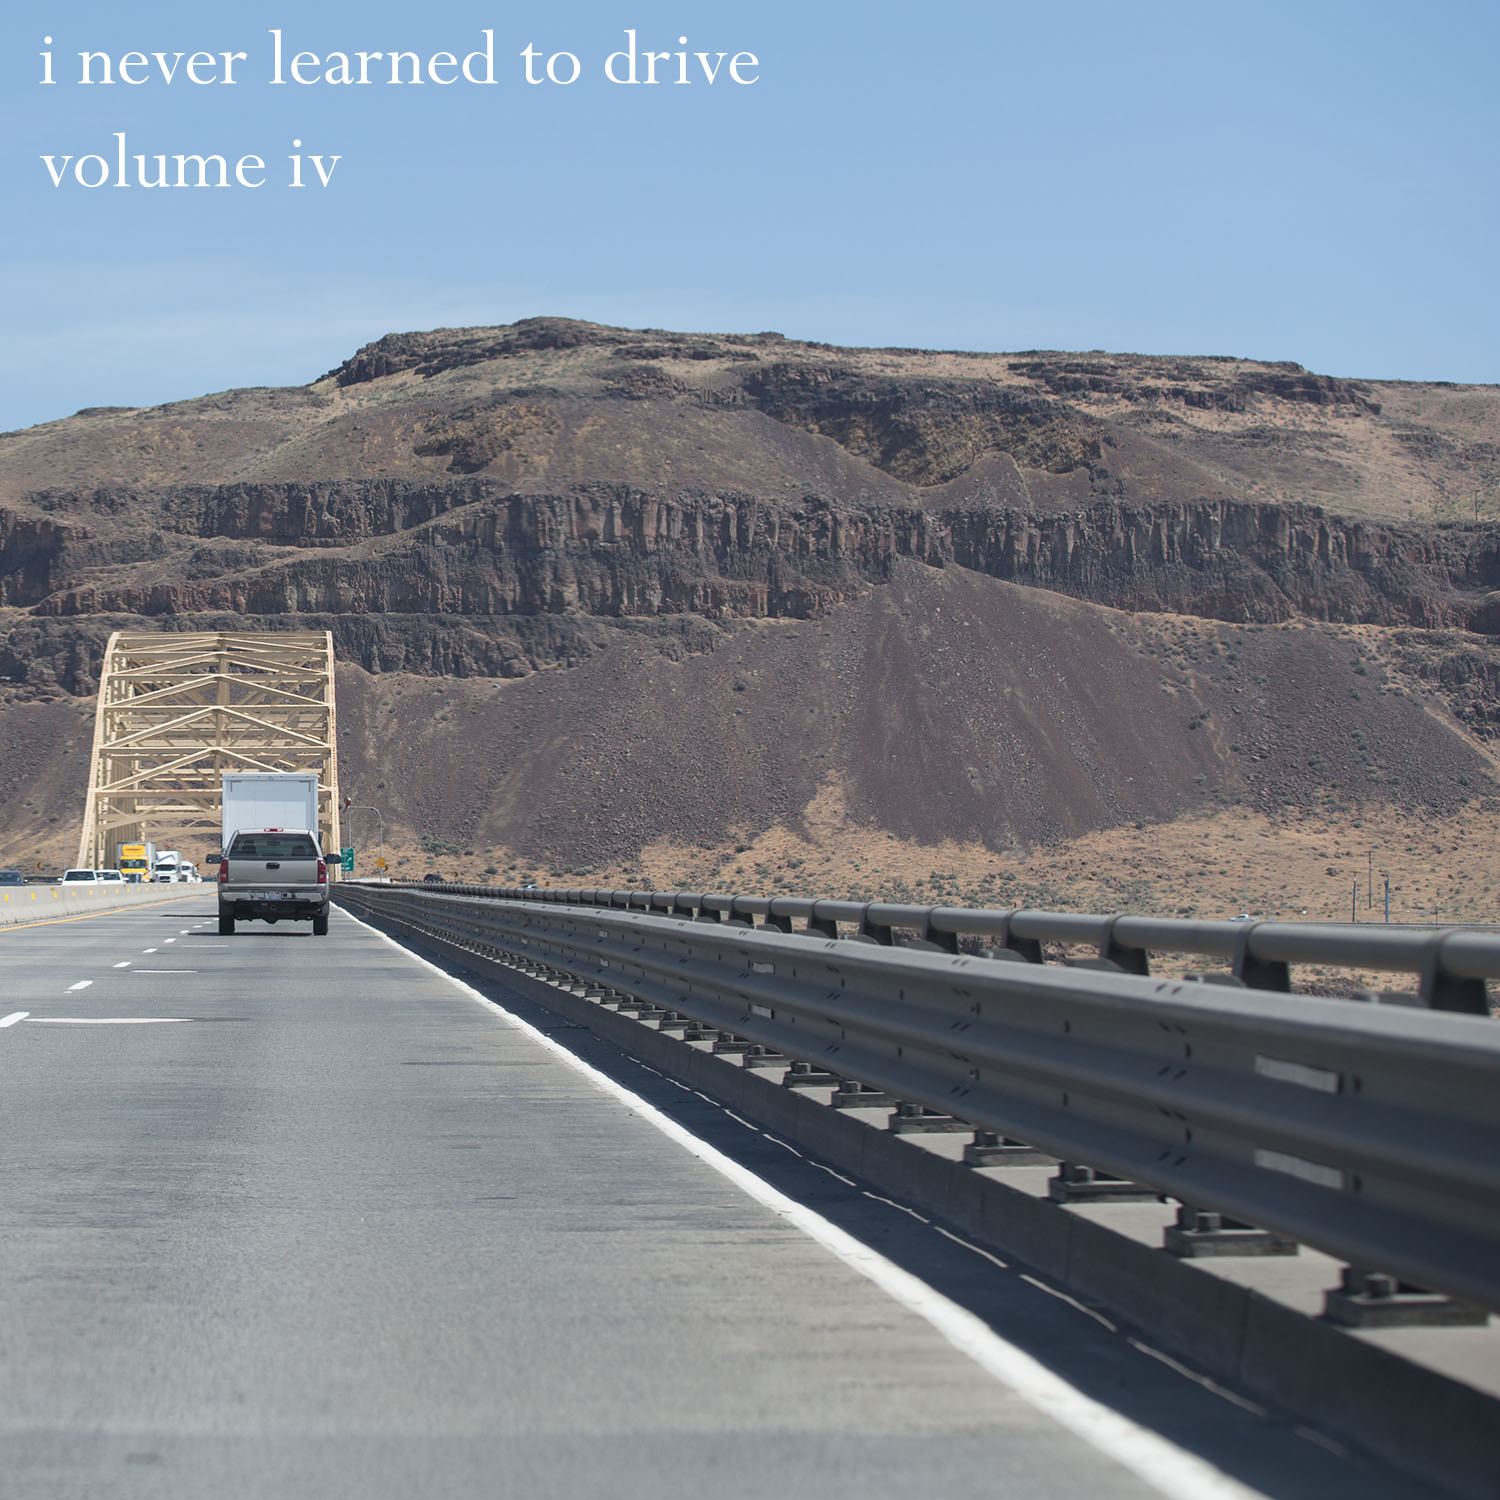 I Never Learned To Drive Vol. IV